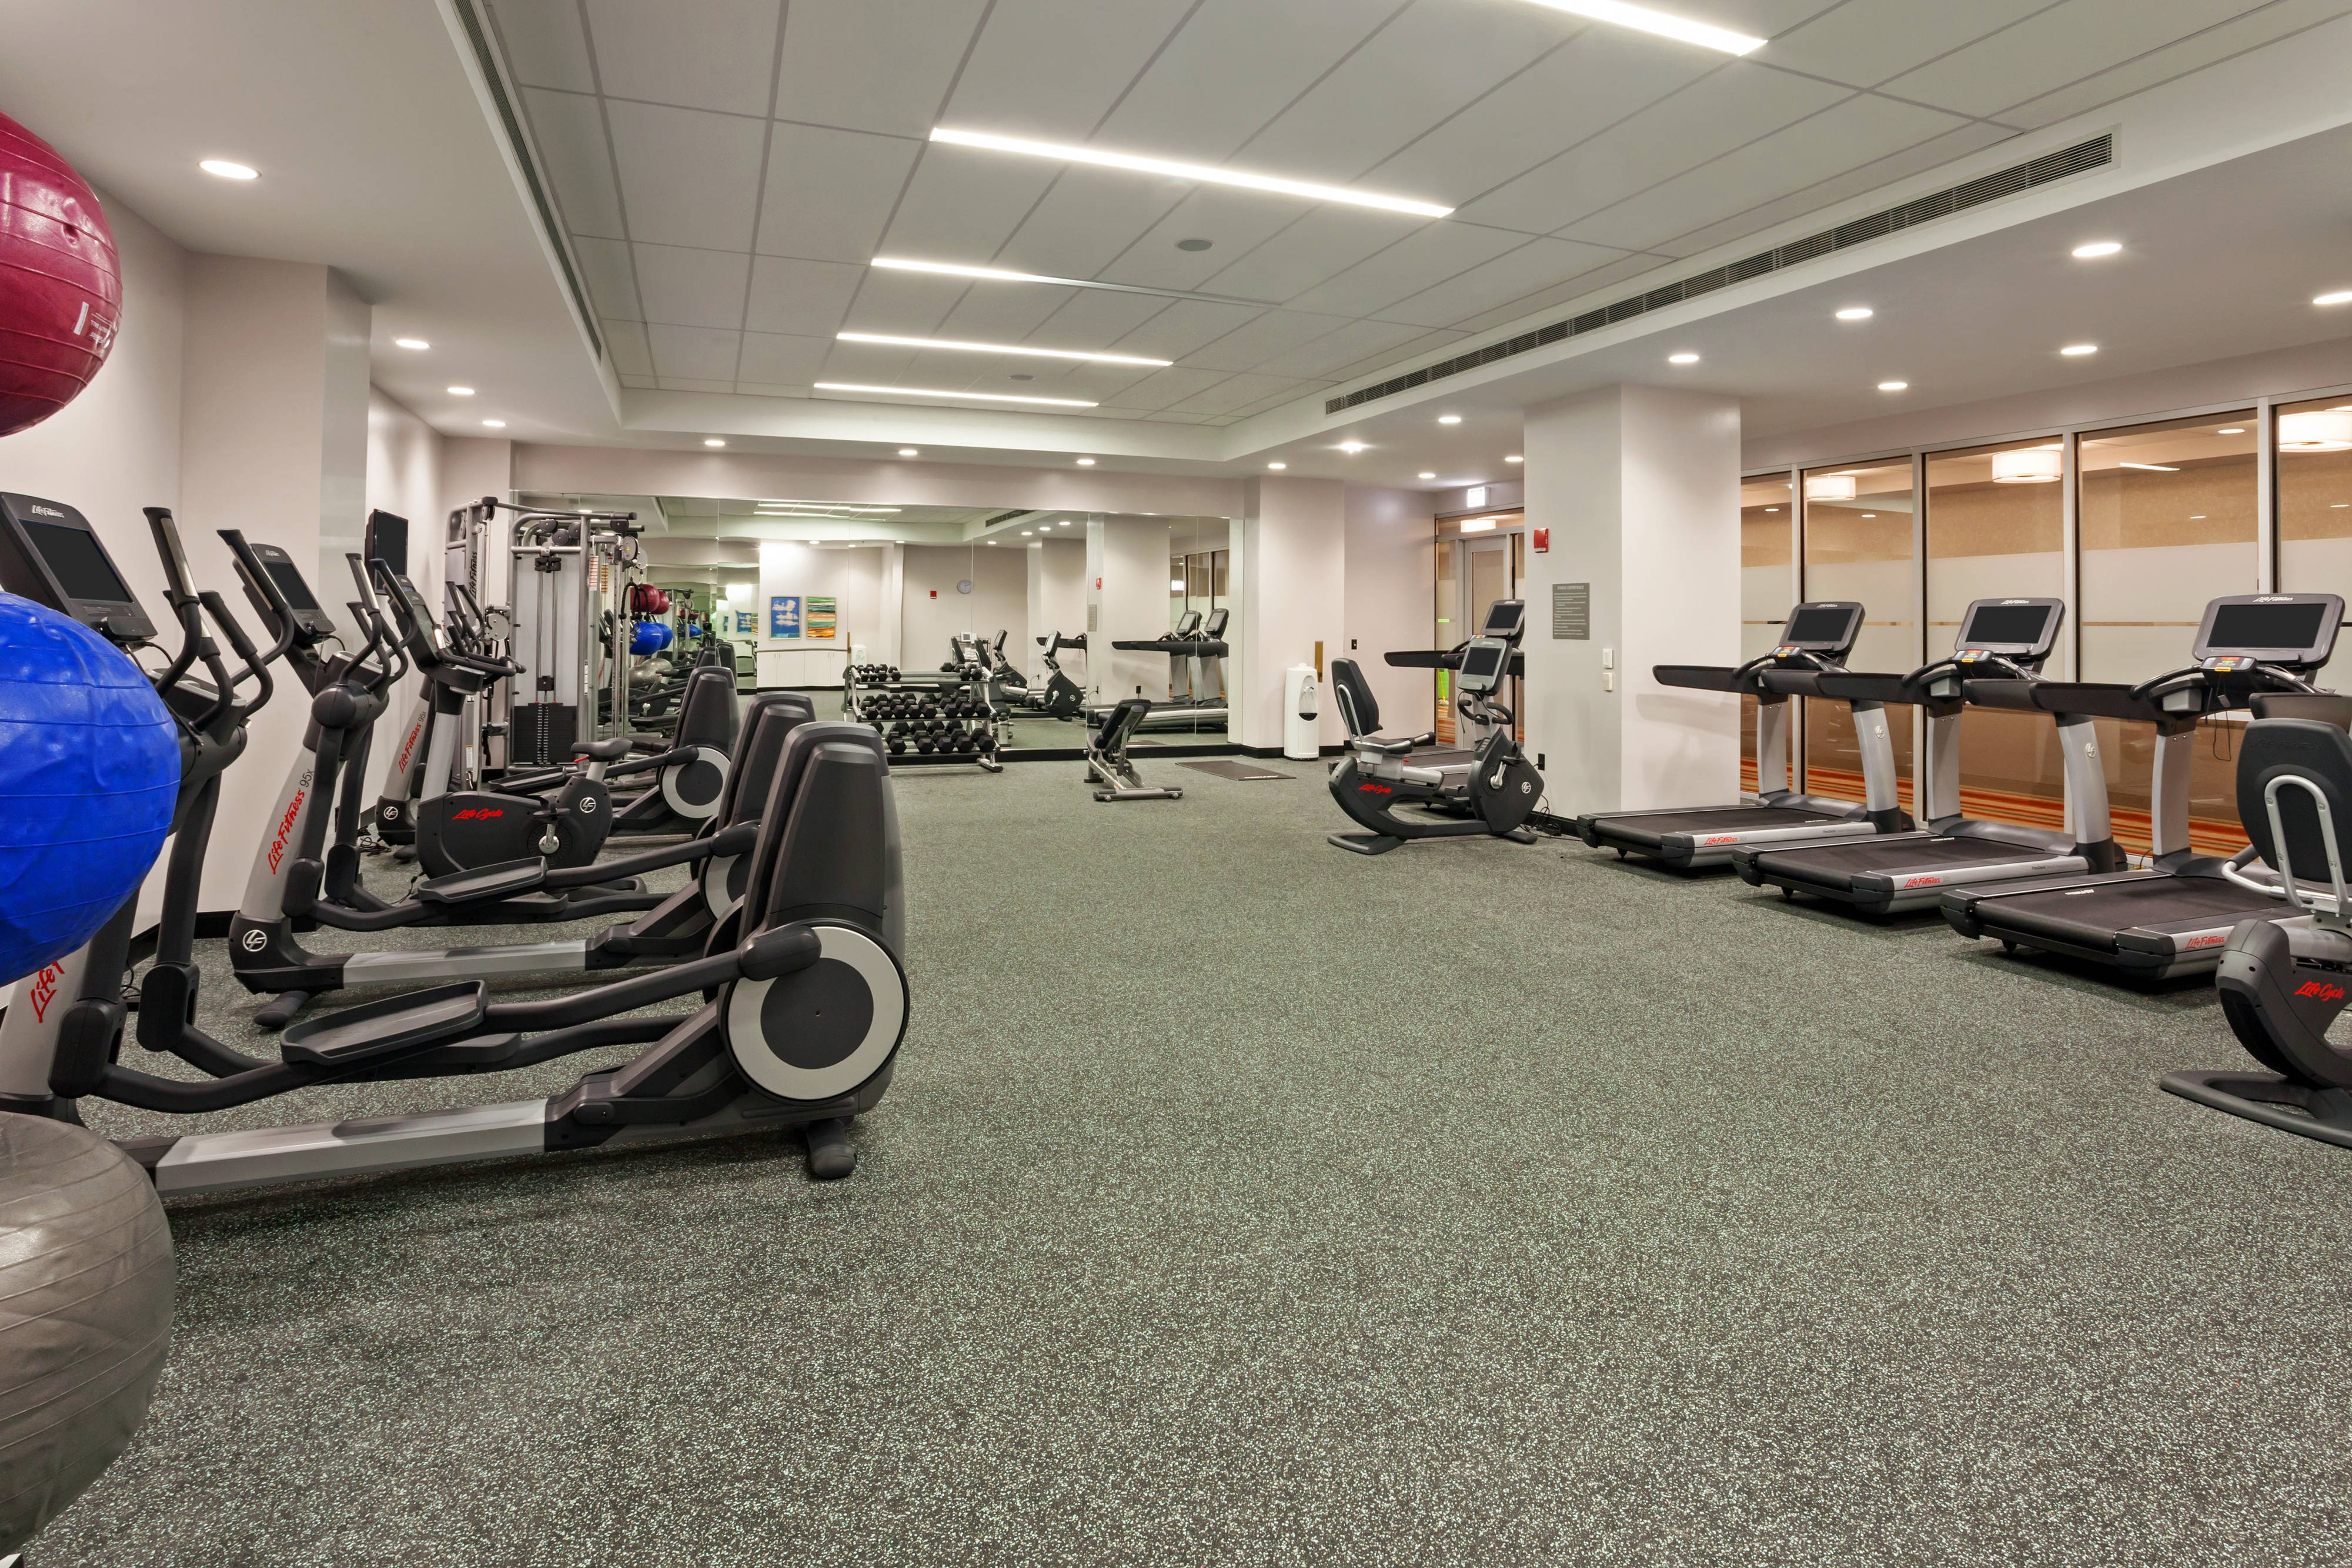 Fairfield Inn & Suites Chicago Downtown River North Hotel Fitness Center